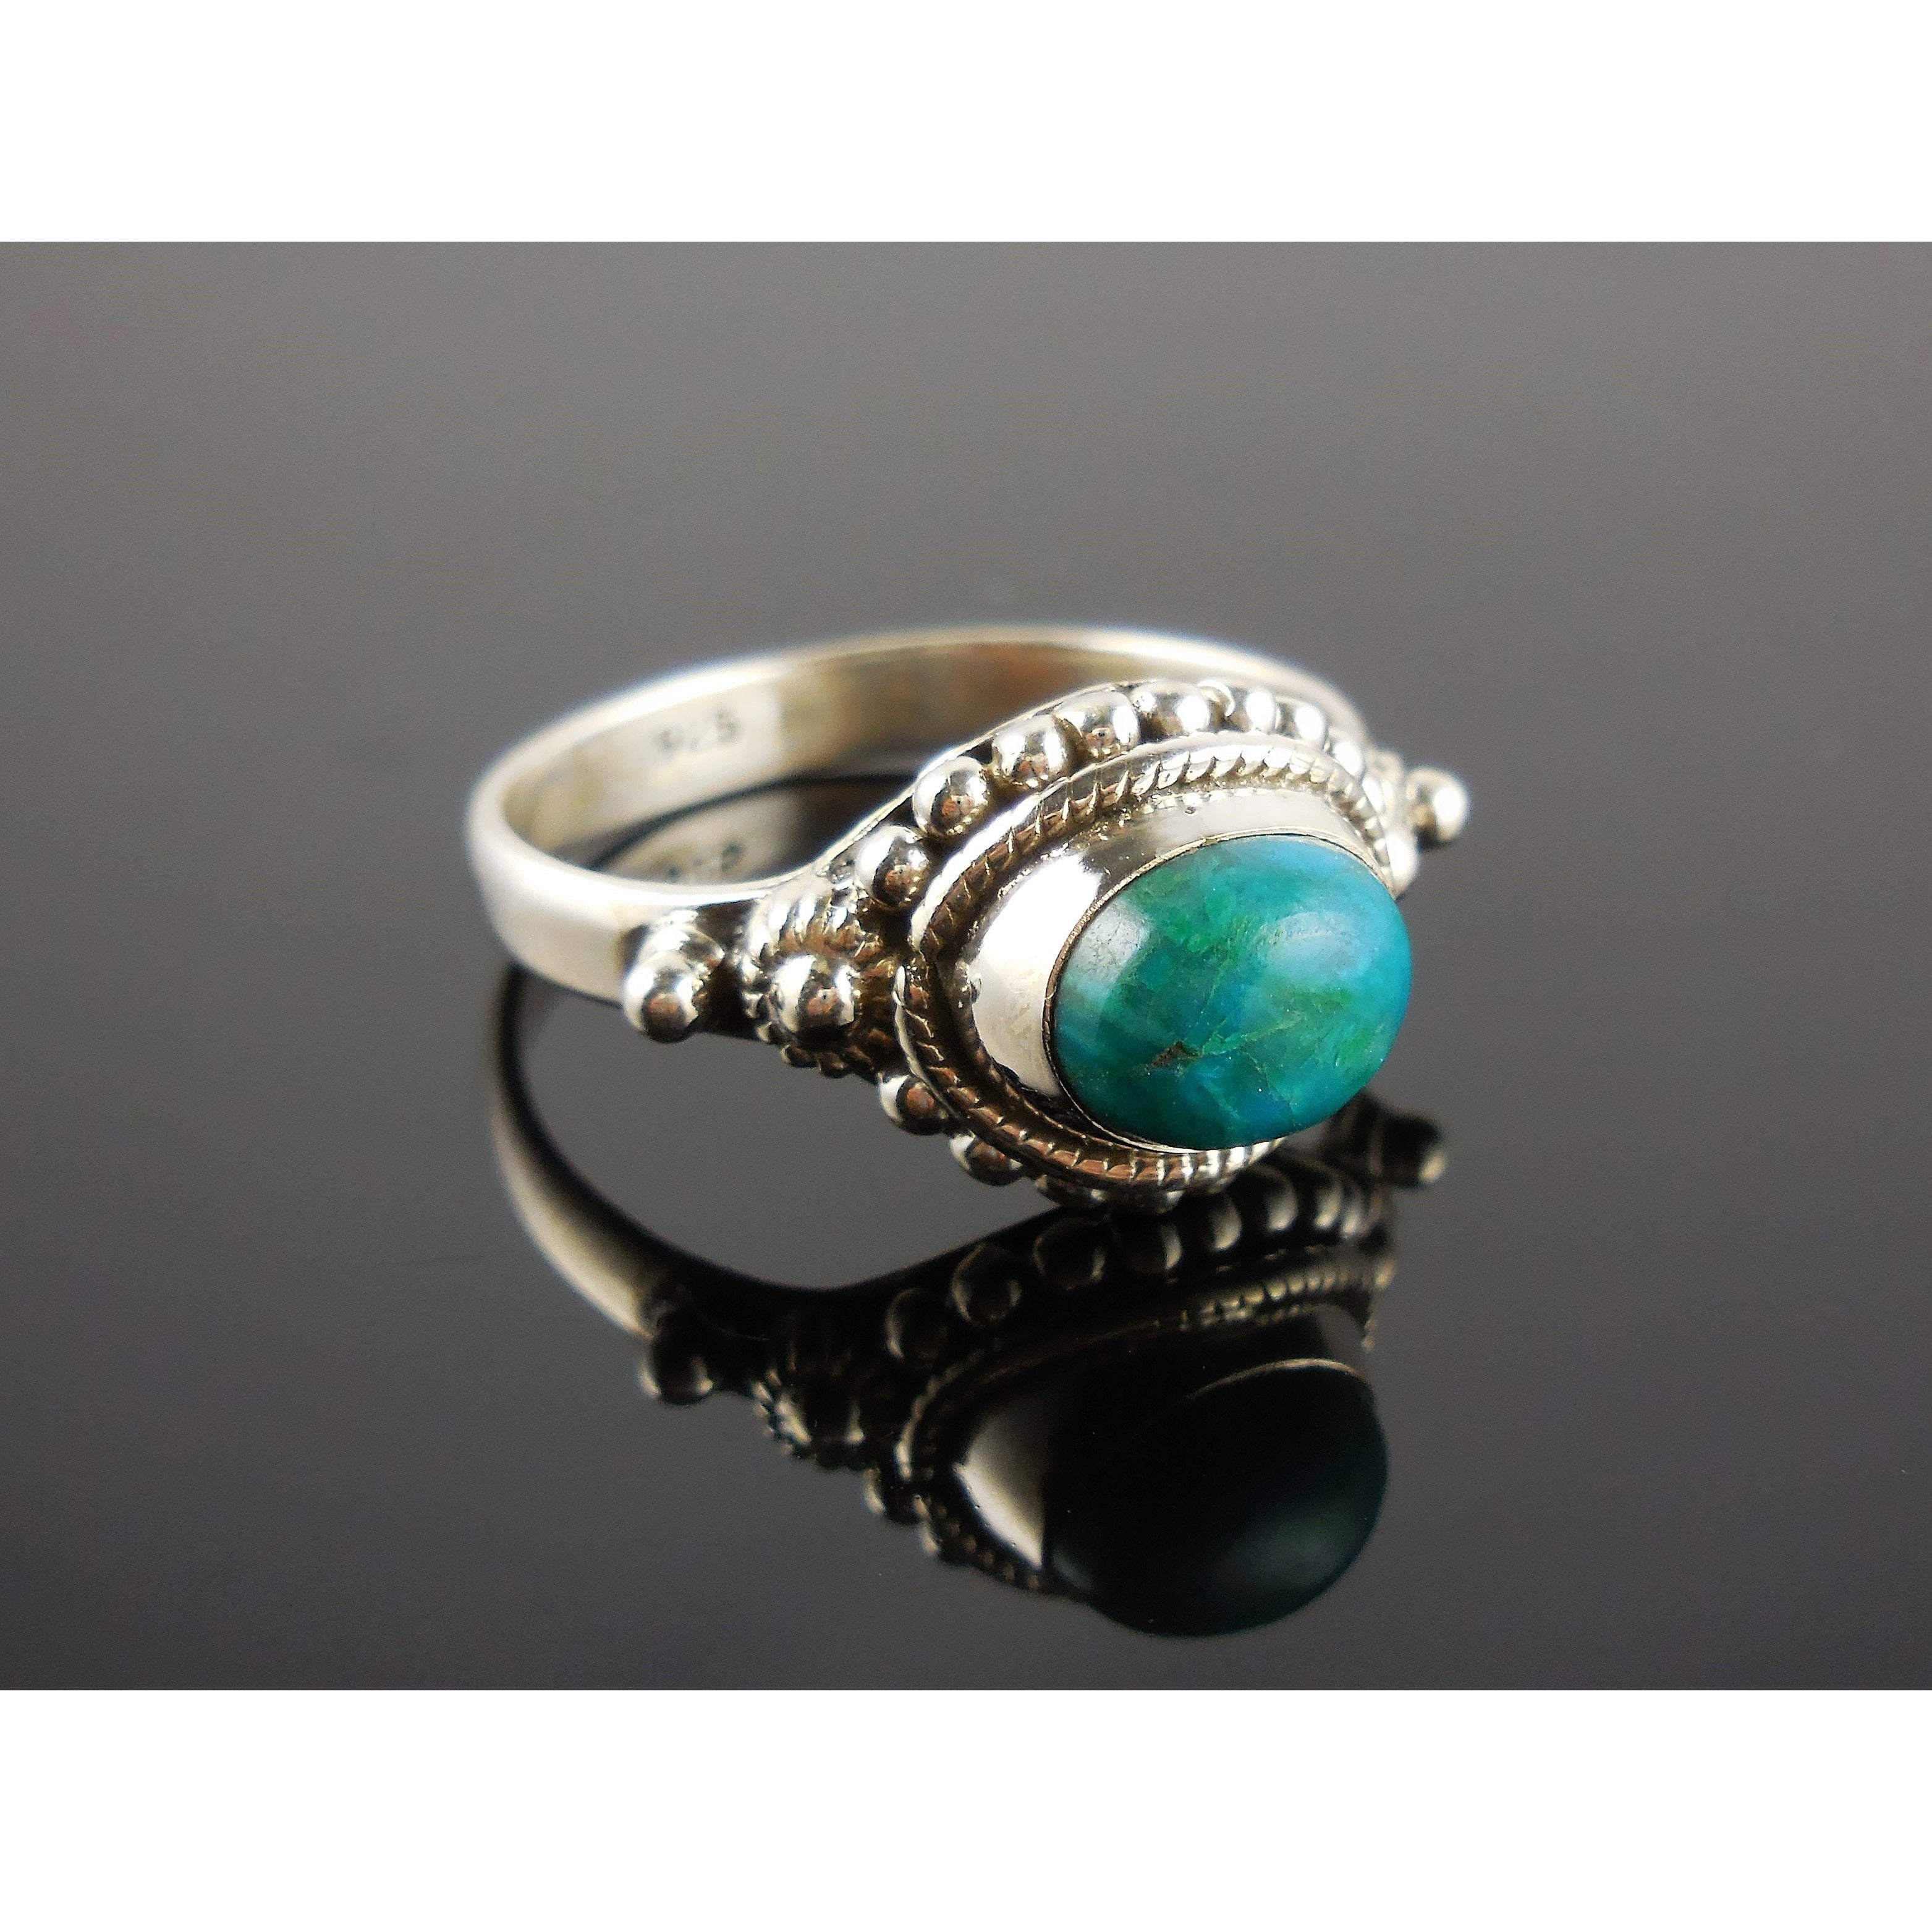 Turquoise Sterling Silver Ring – Size 7.85